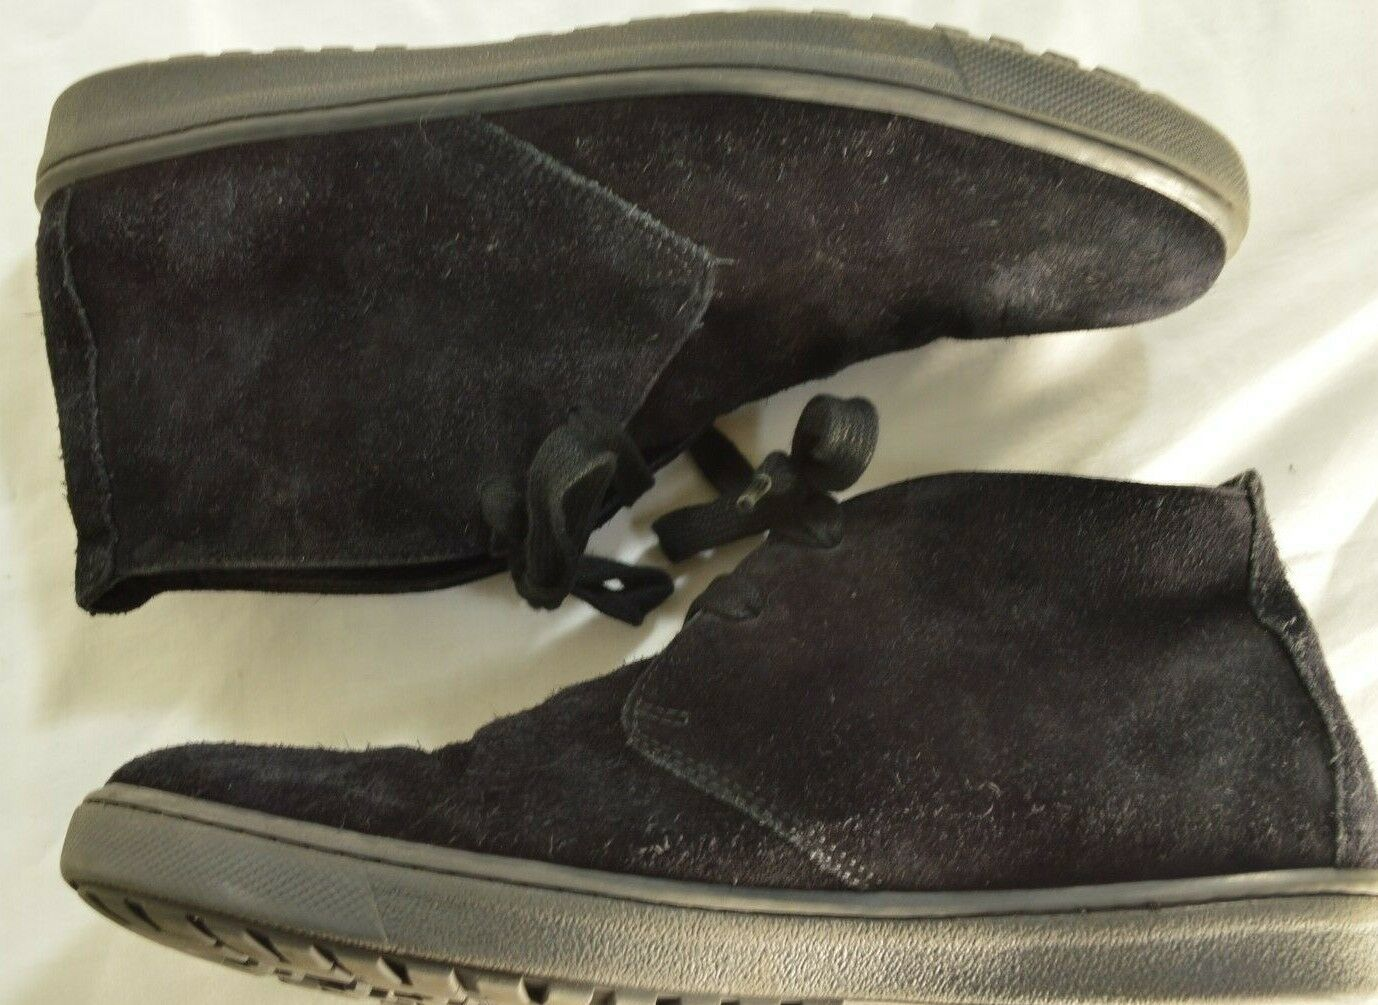 Vince shoes boots hi top US 8 EU 41 black suede leather upper leather lining image 4